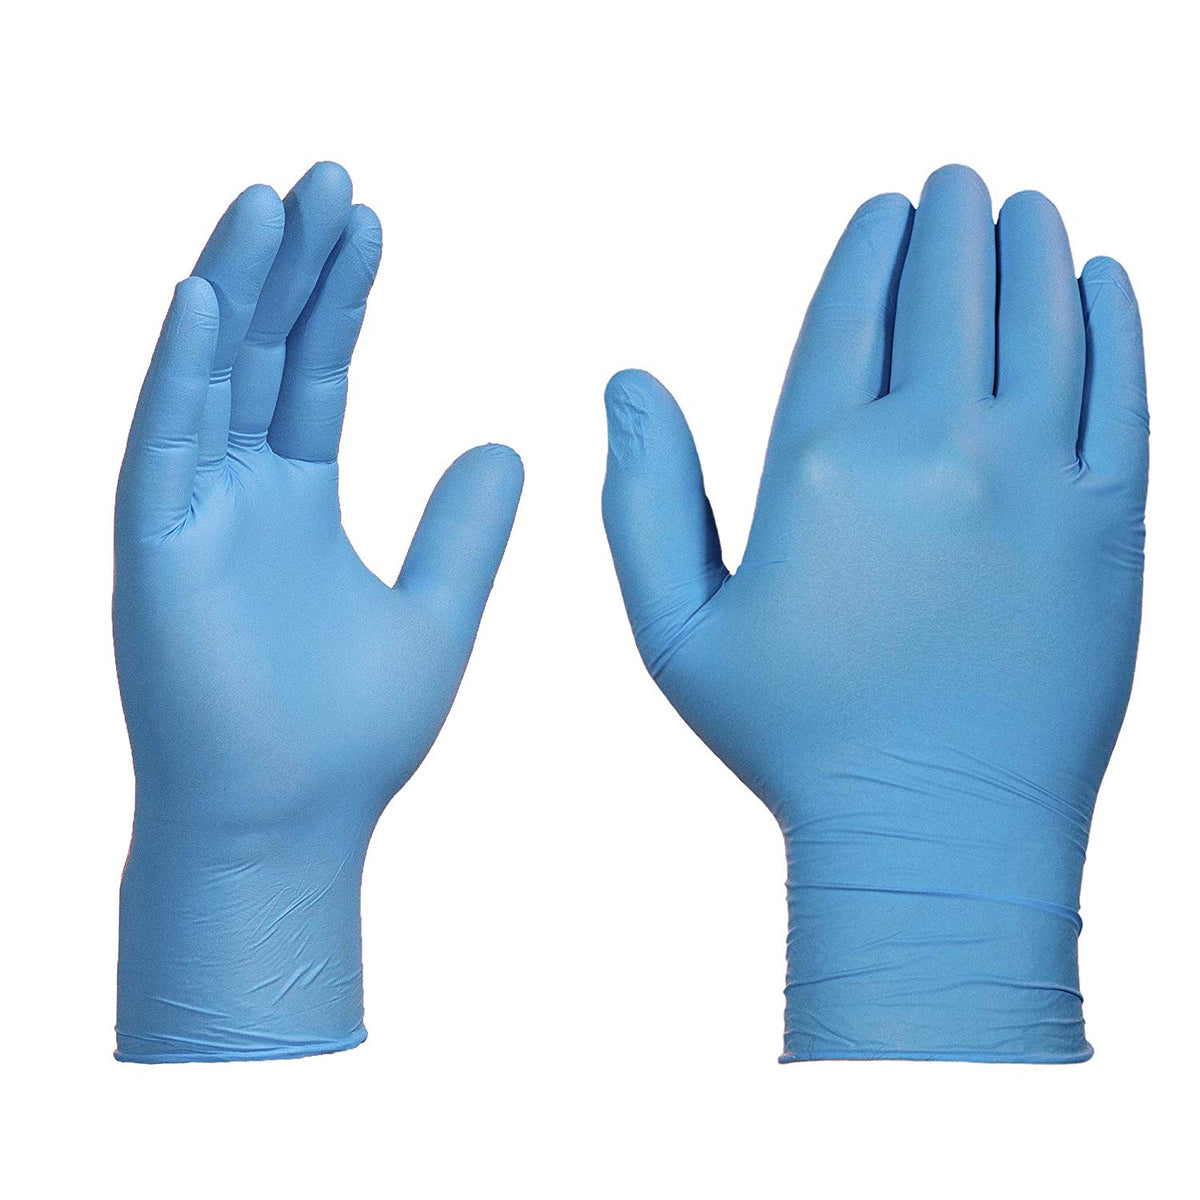 15 PAIRS DISPOSABLE NITRILE GLOVES TO AVOID CONTACT WITH CONTAMINATED SURFACES - SPECIAL OFFER